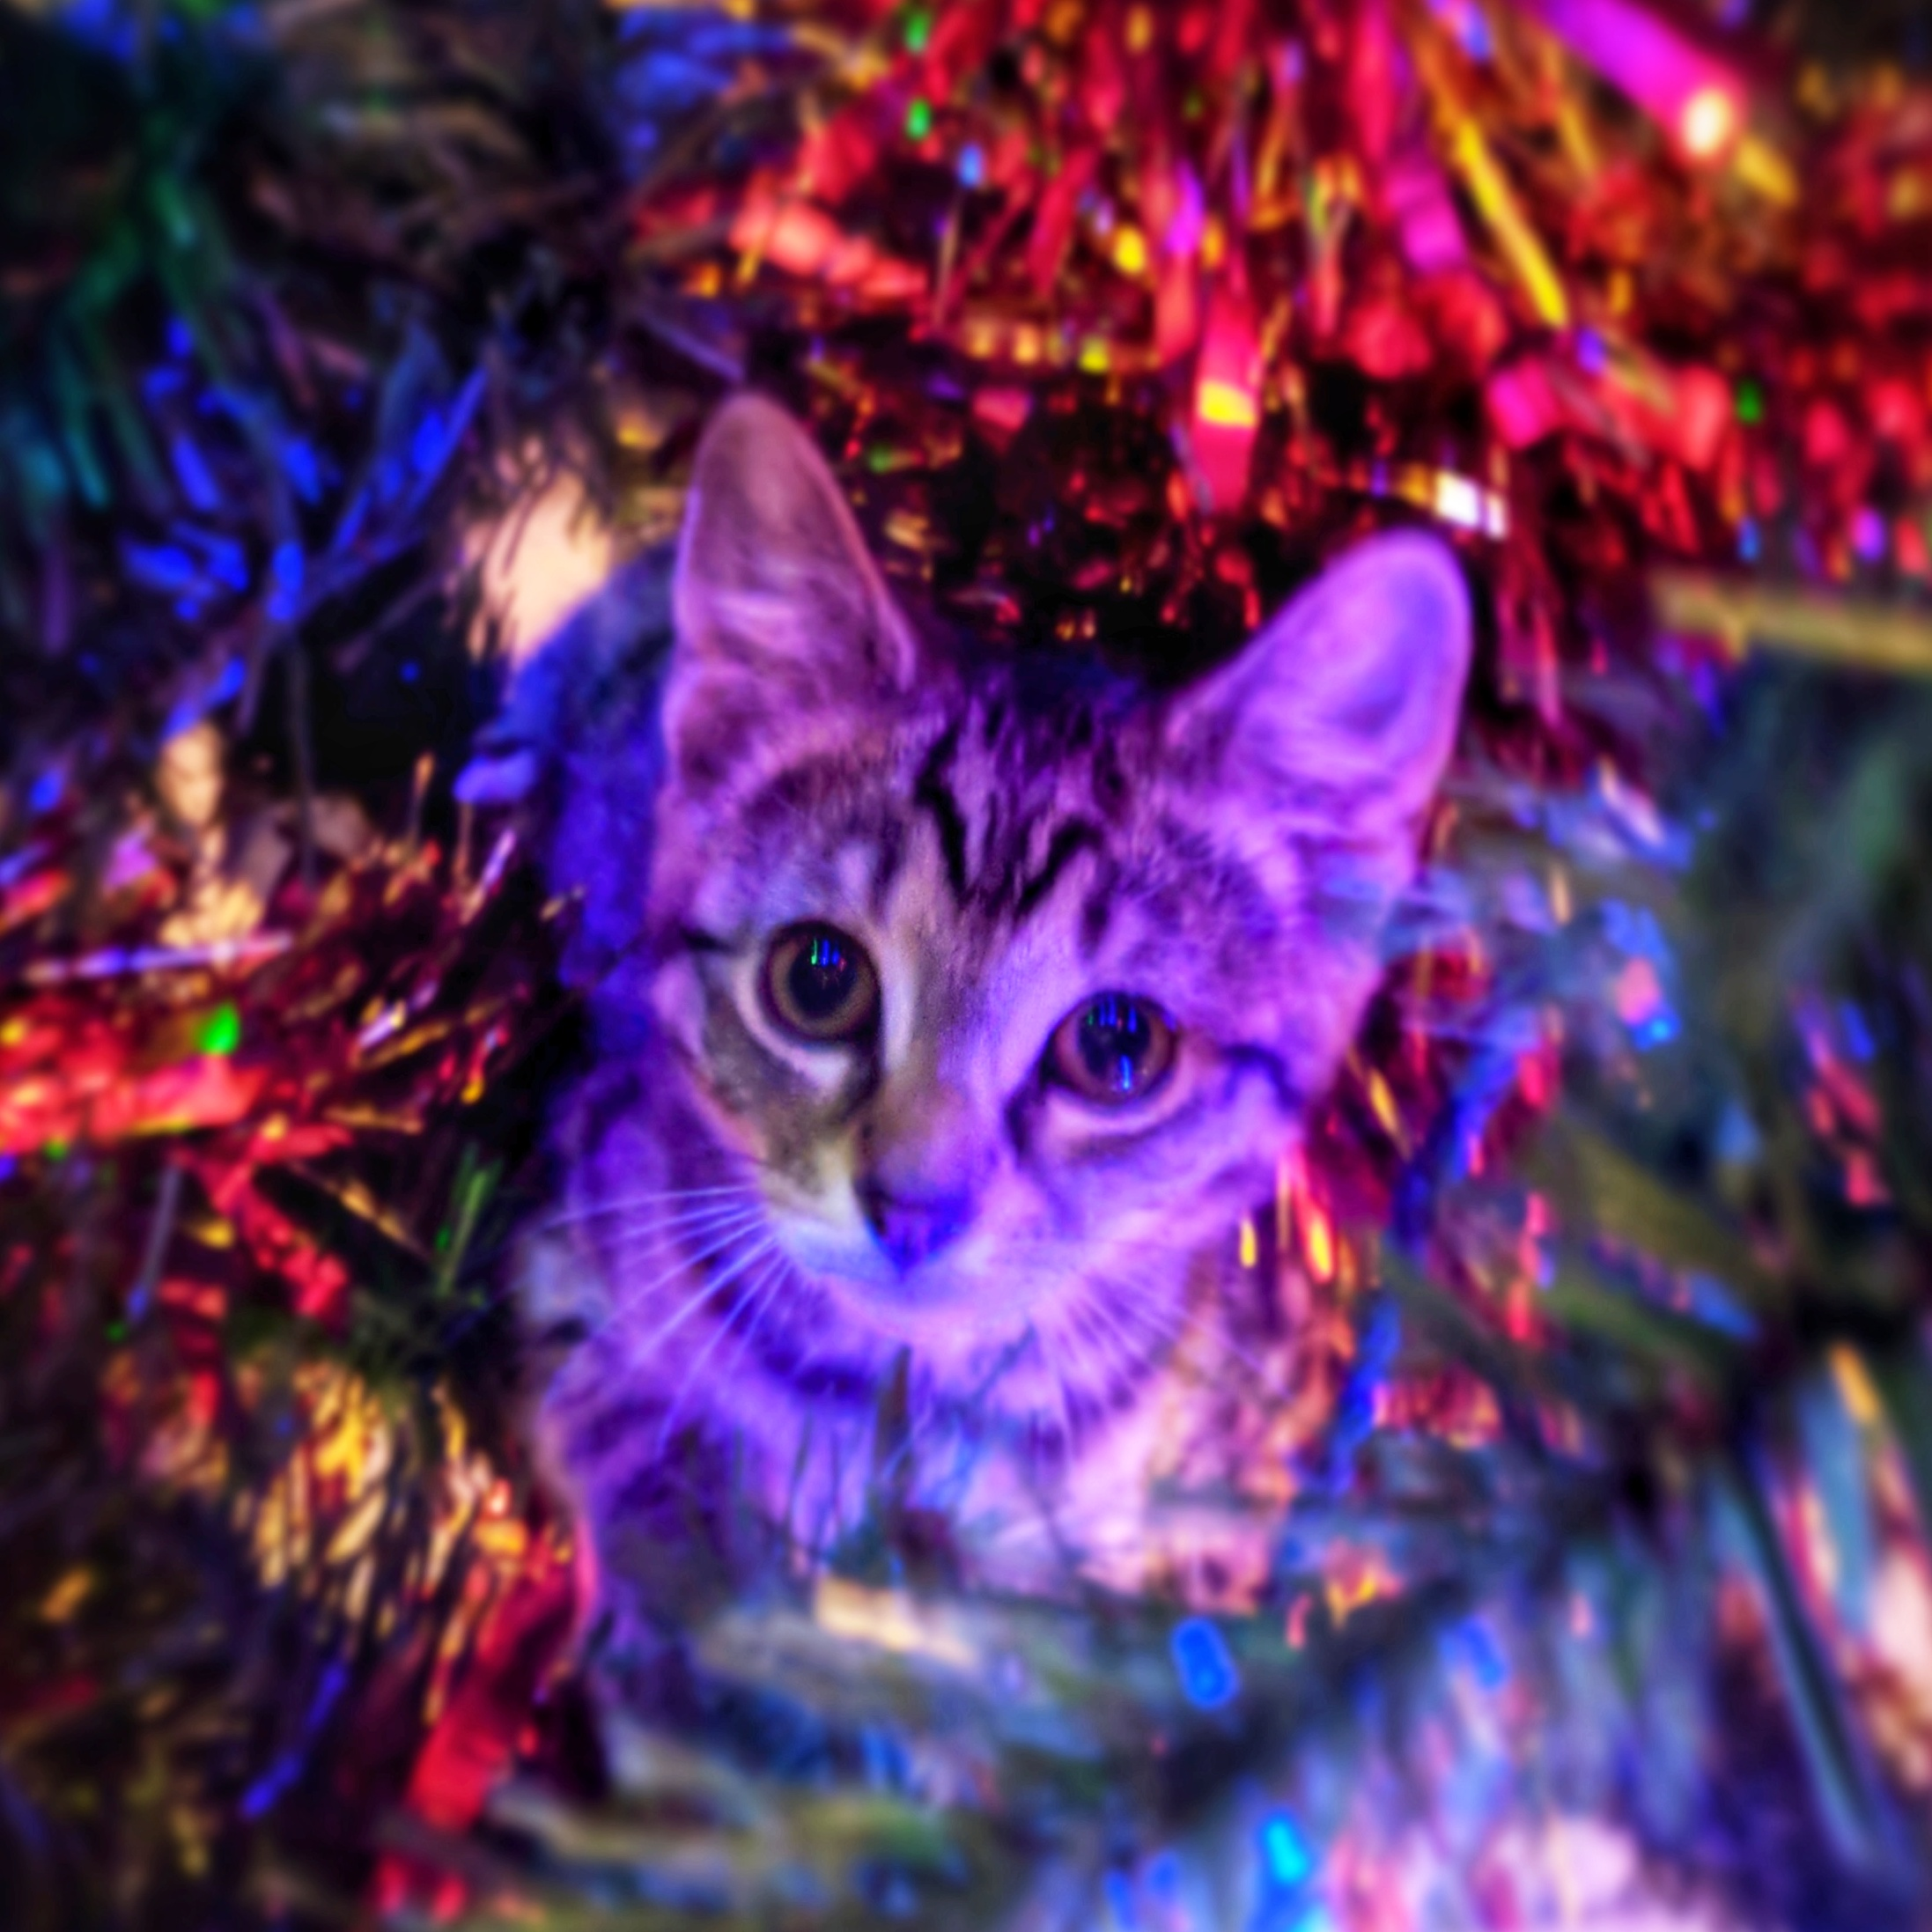 Kitten up in a decorated Christmas Tree